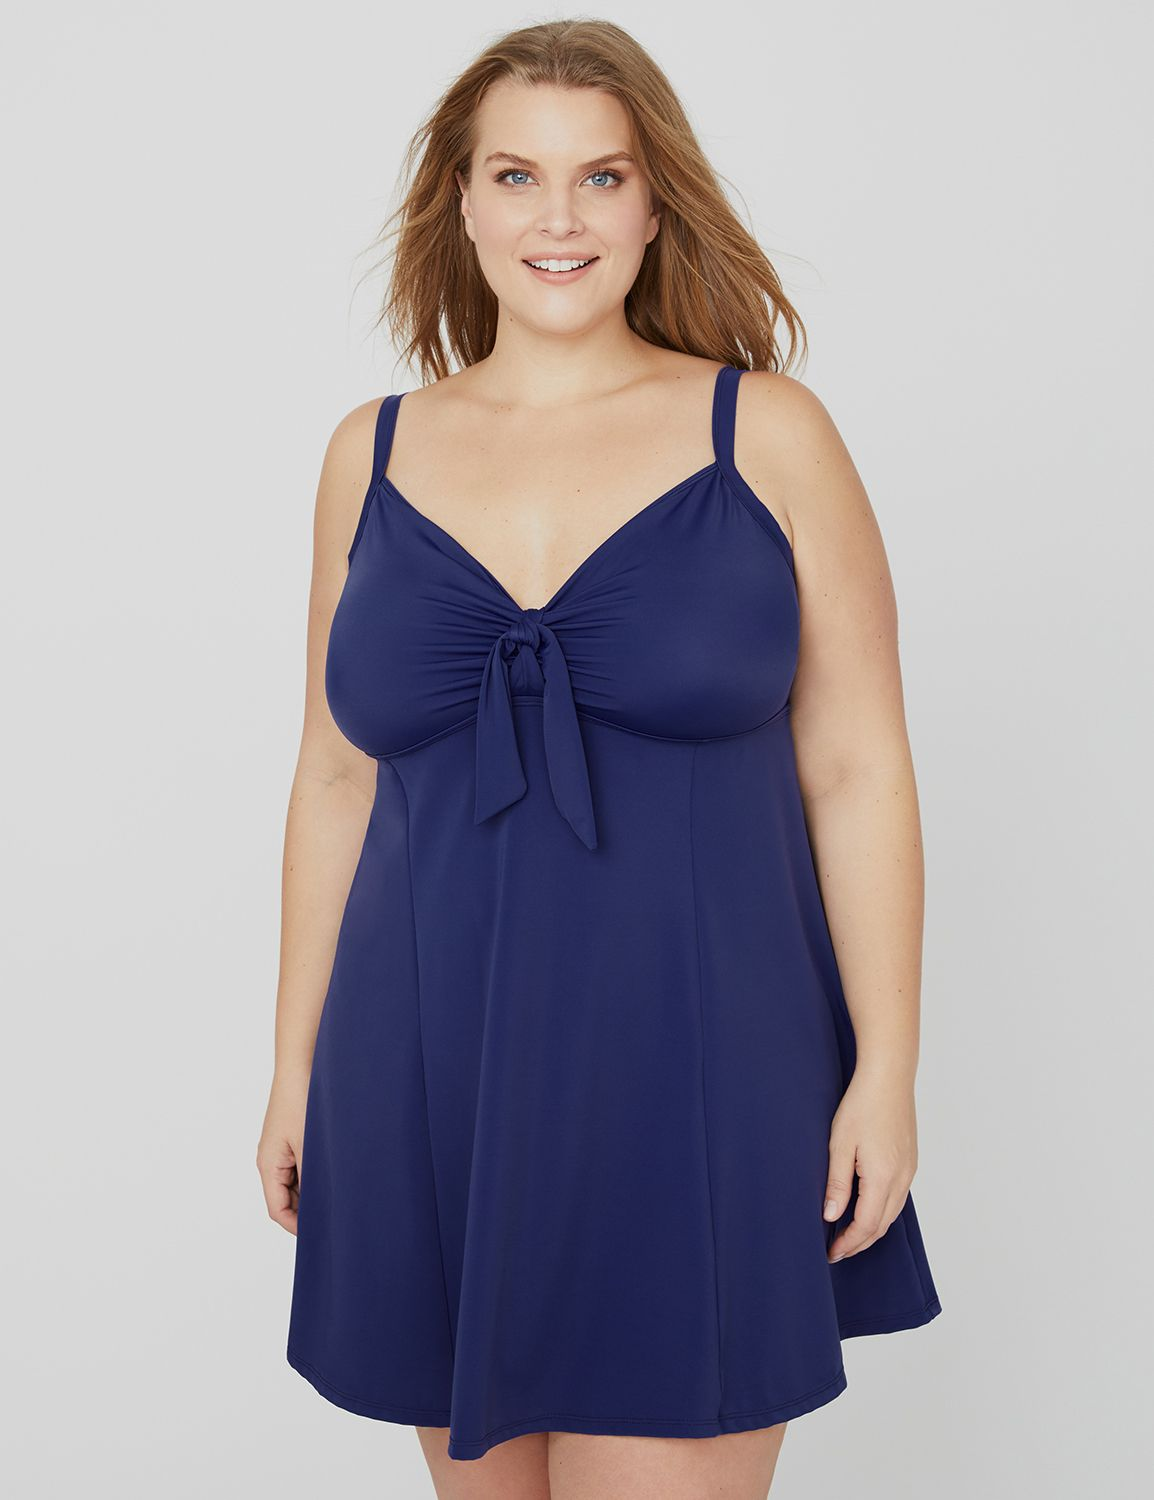 Sugar Hollow Swimdress Tie Front Swim Dress MP-300094190